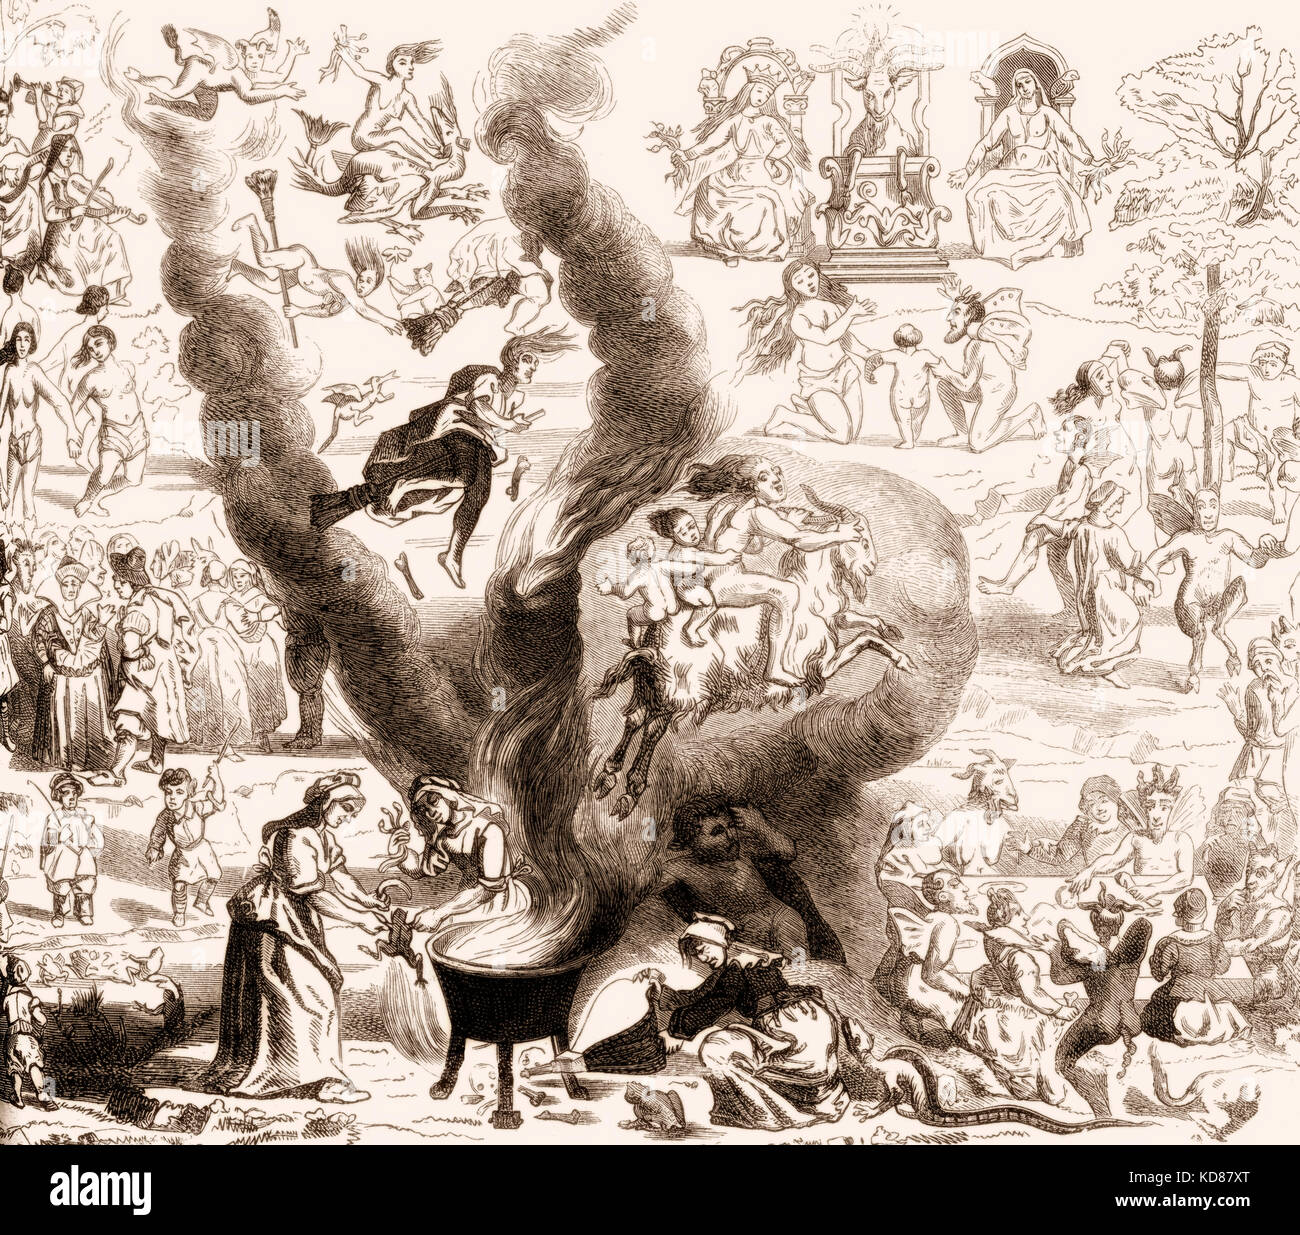 A Witches' Sabbath in Middle Ages - Stock Image